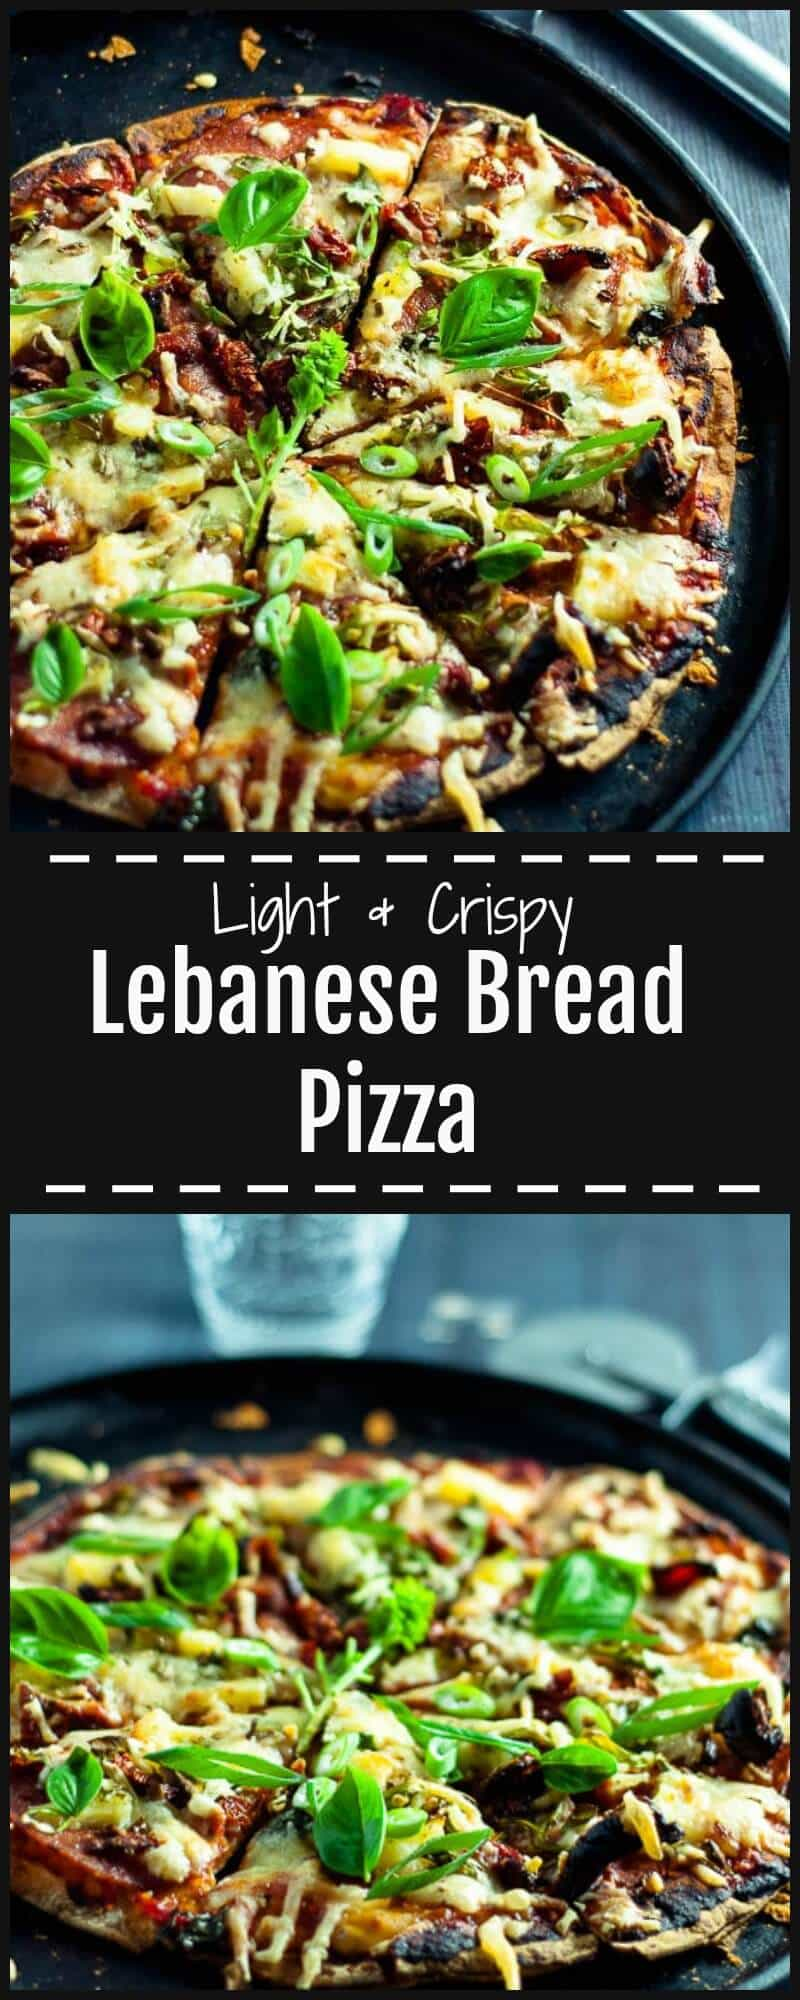 Healthy and Easy low calorie Lebanese Bread Pizza that is light, crispy, crunchy, spicy and ready in 20 mins. Double Cooked Base, with salami plus toppings.